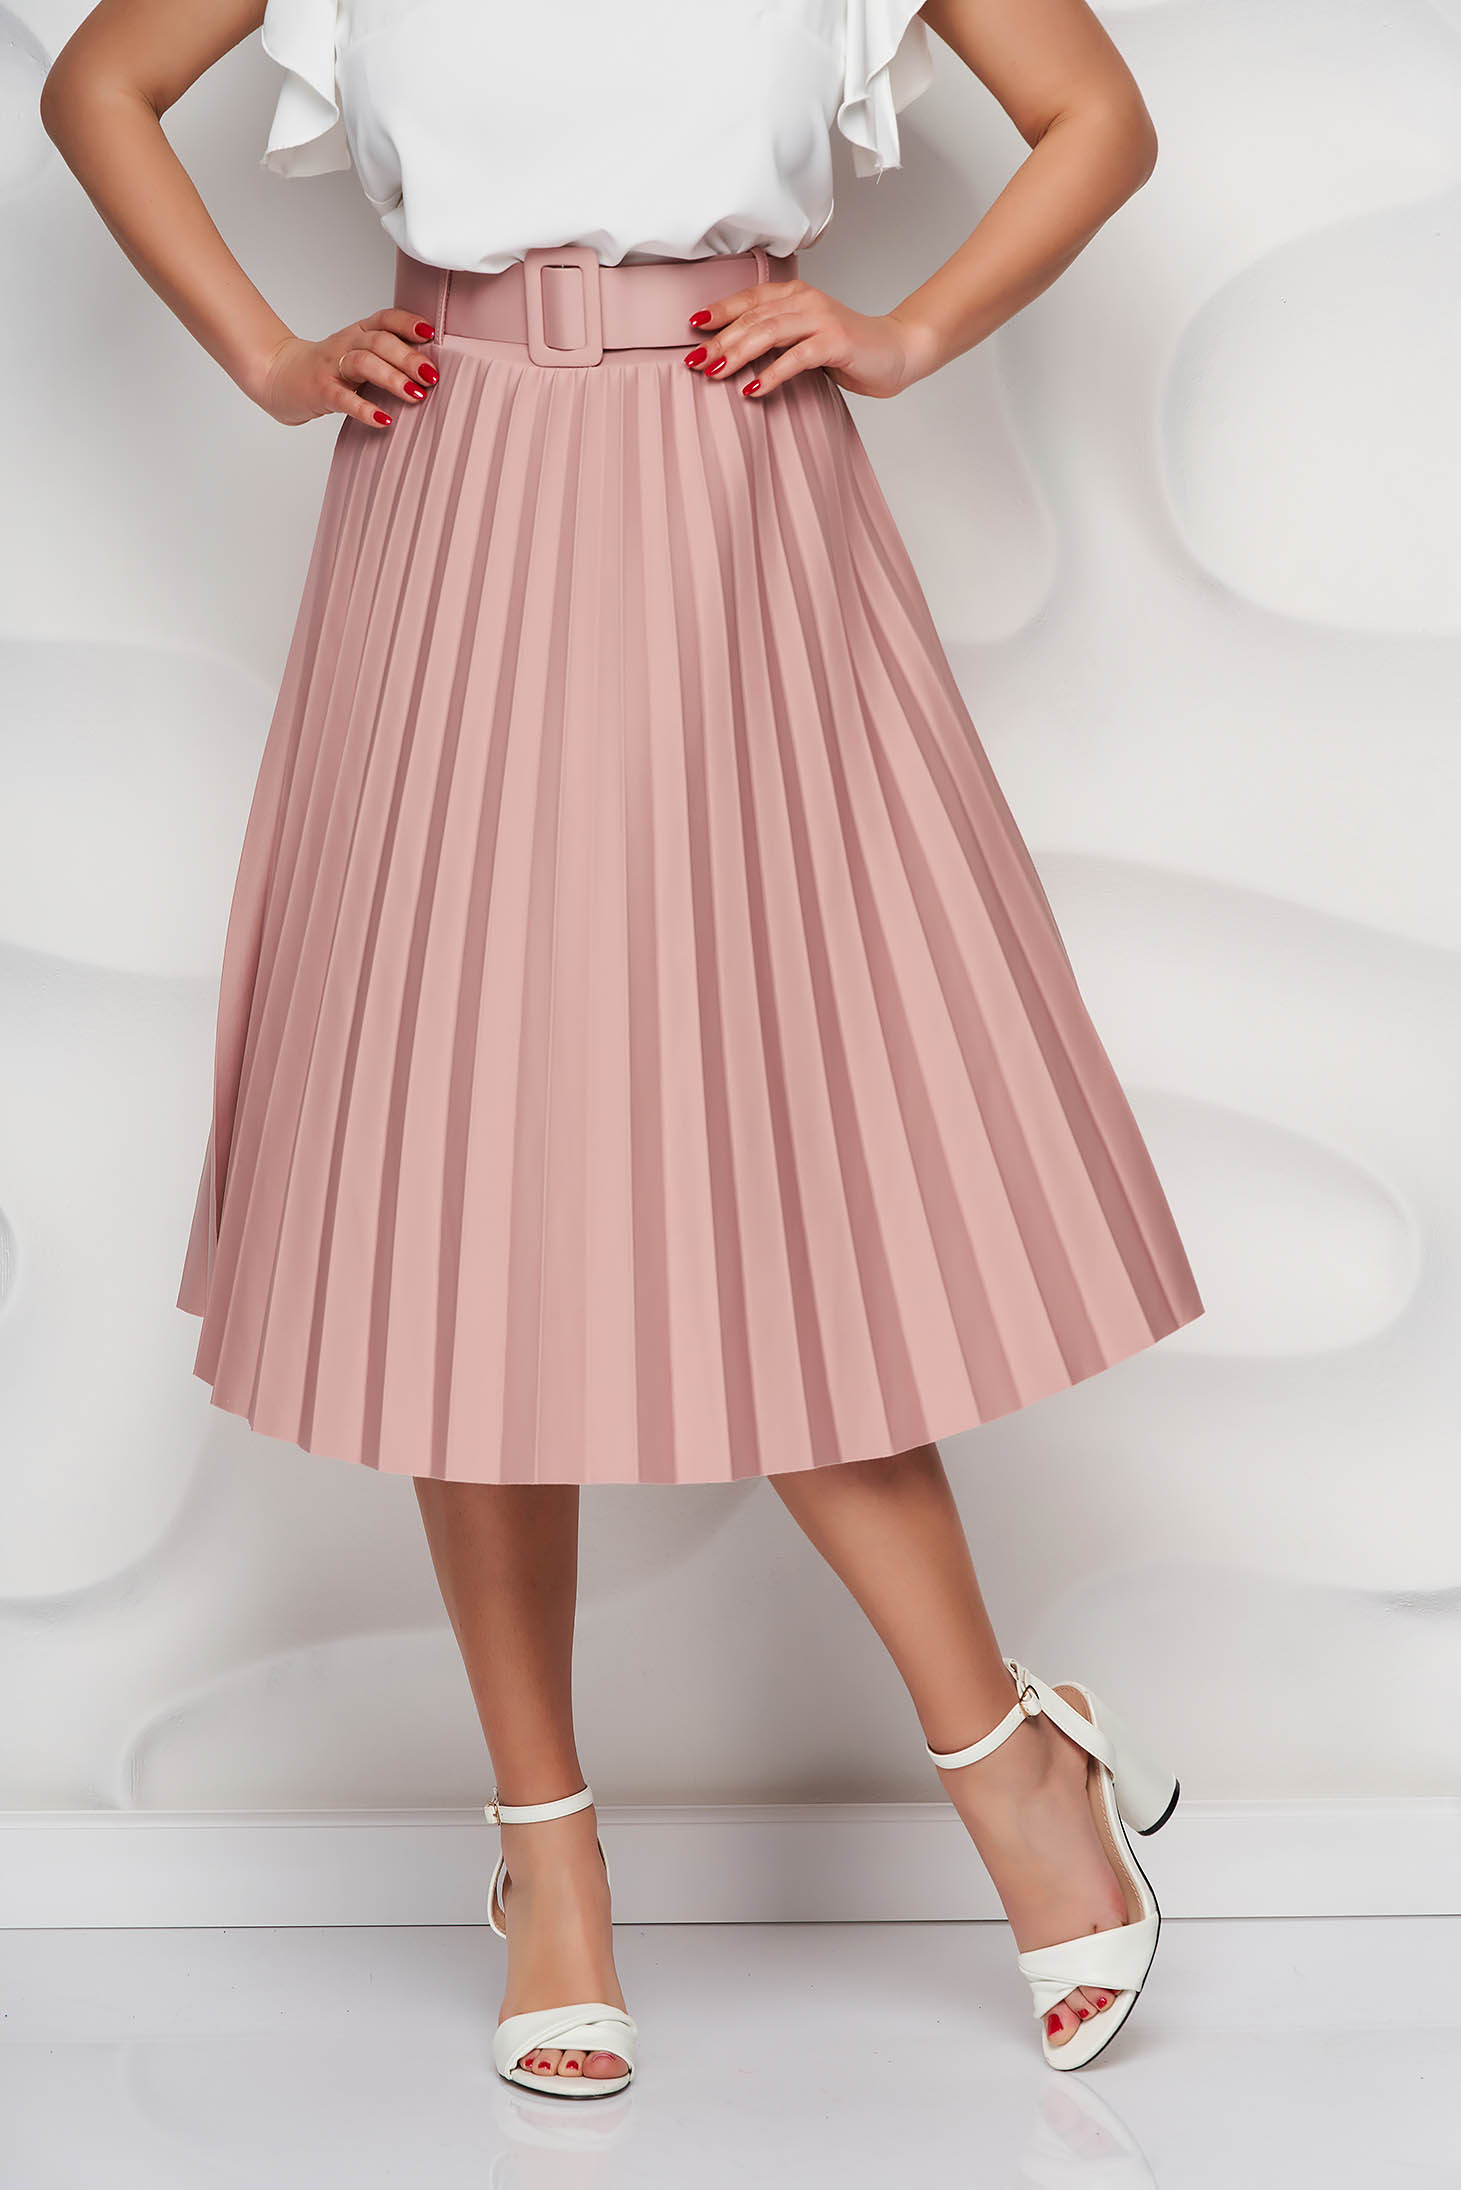 Lightpink skirt cloche accessorized with belt slightly elastic fabric folded up